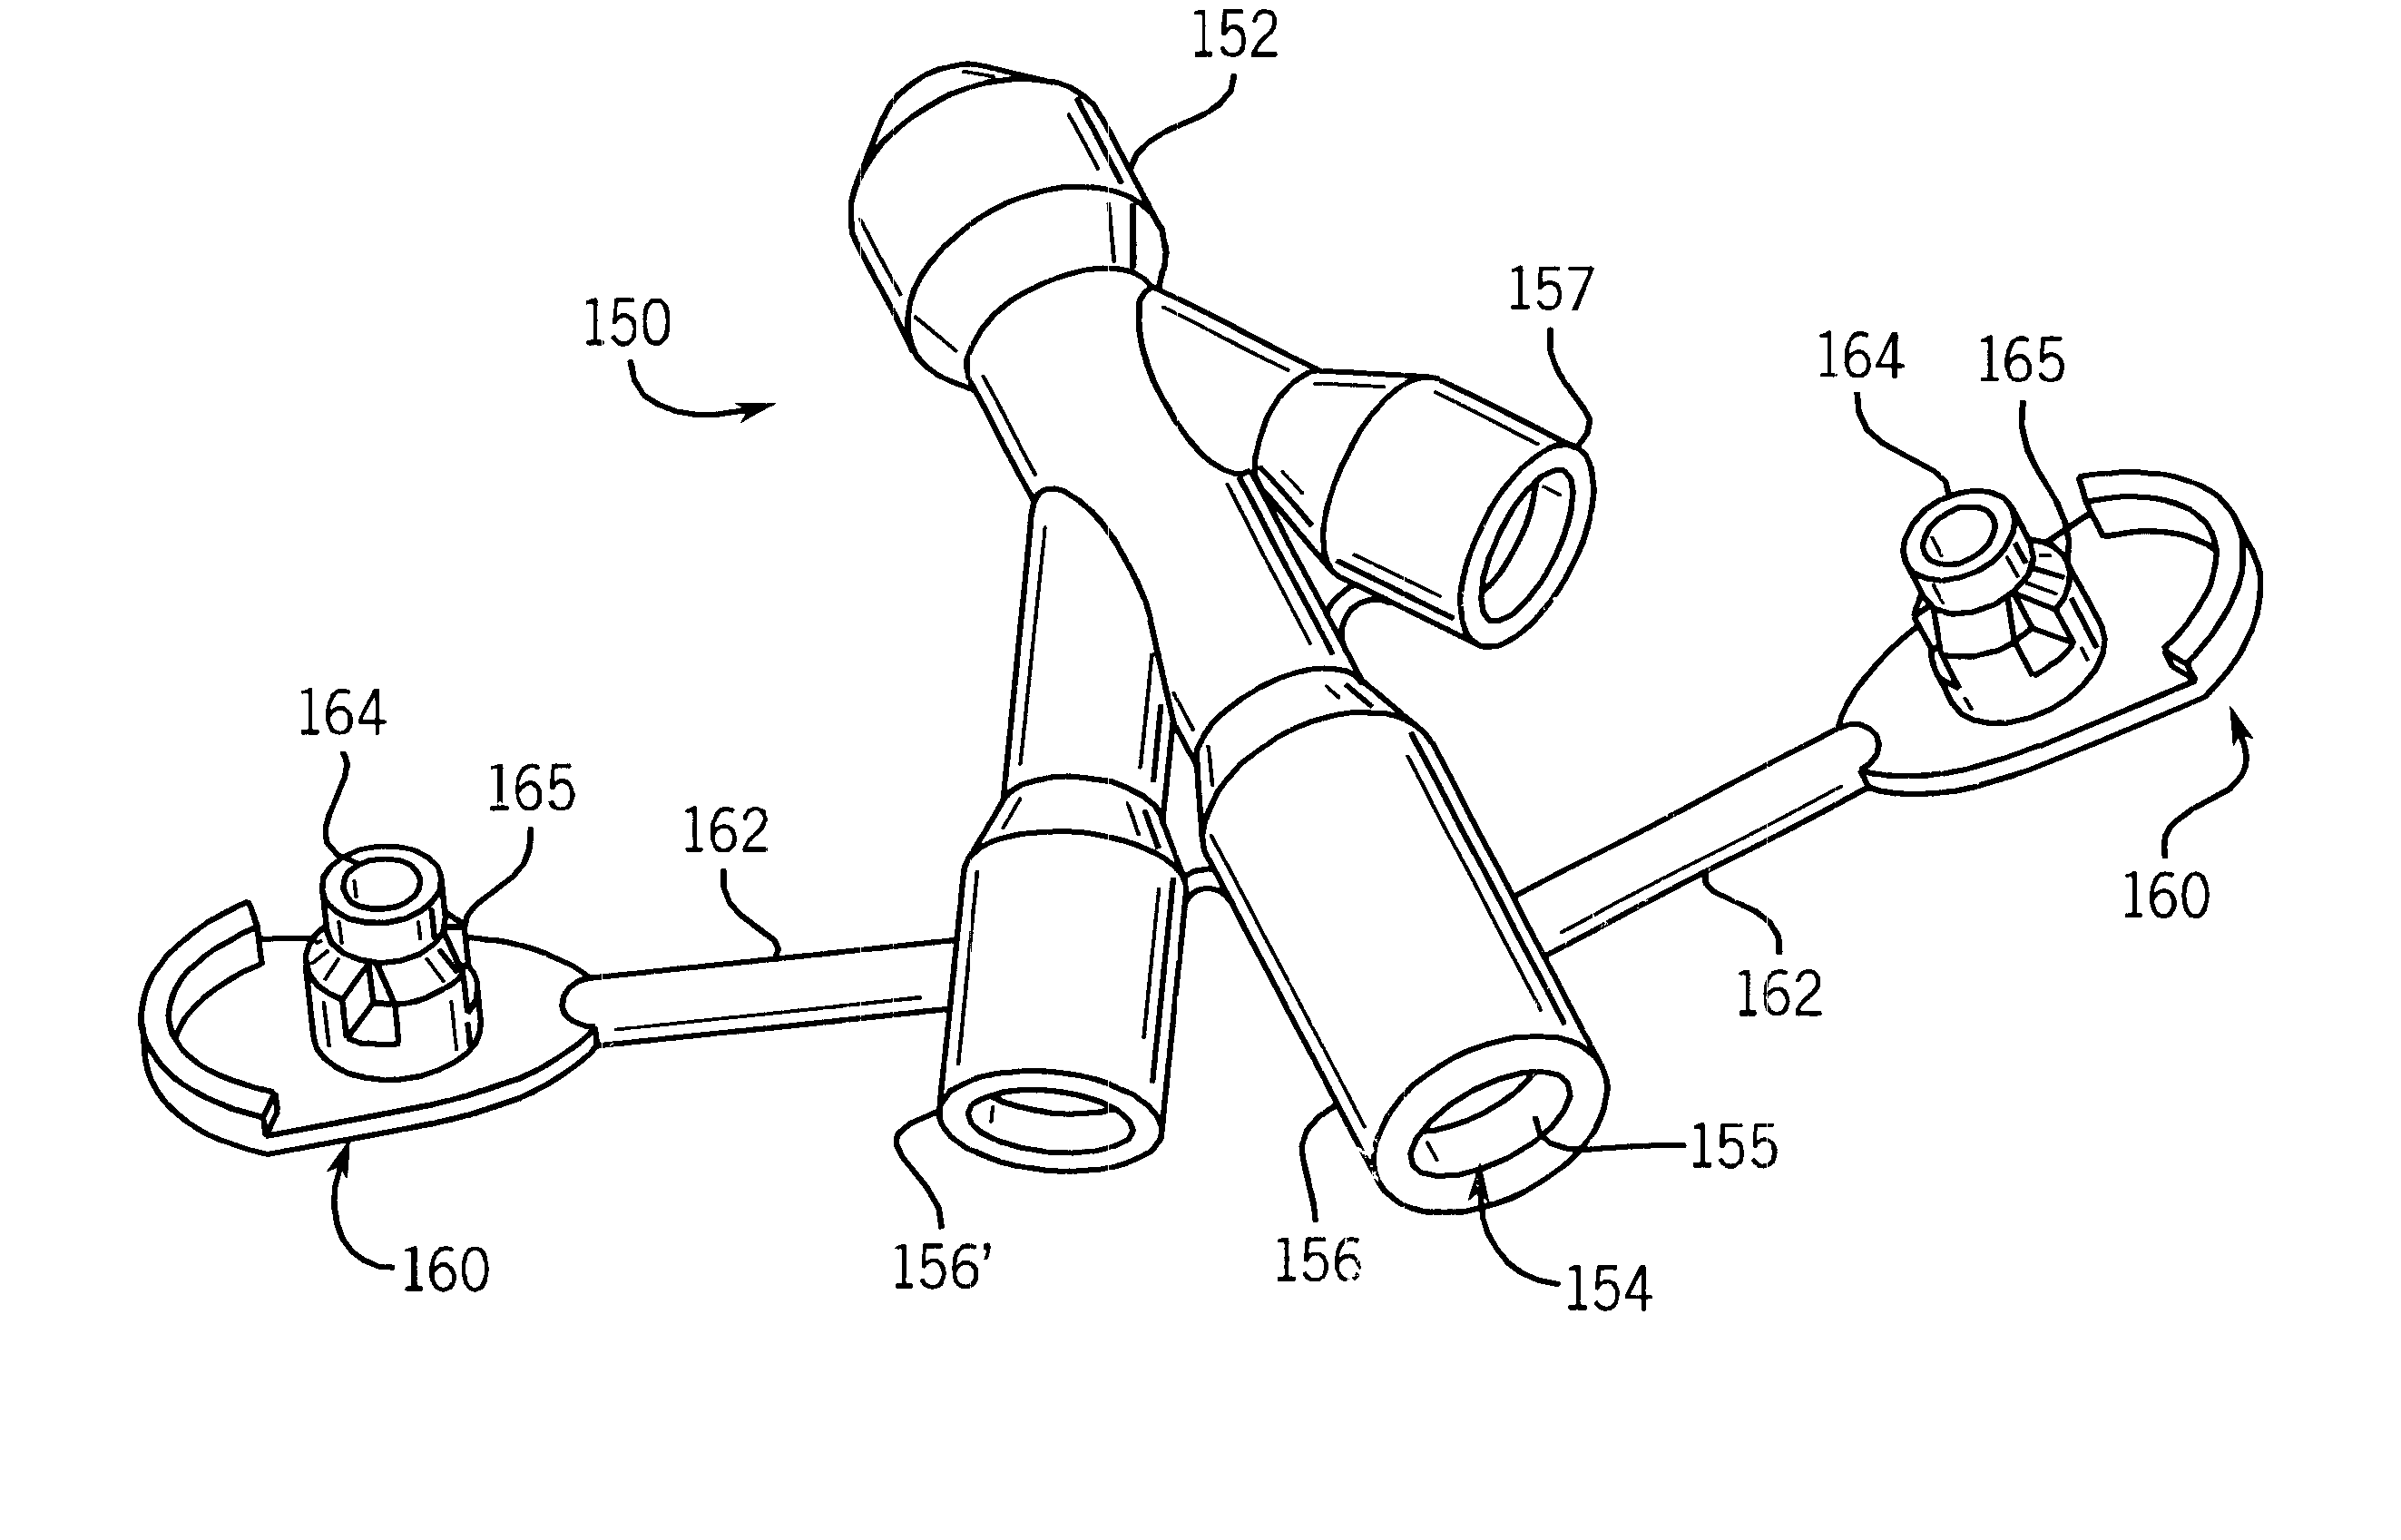 Image:Patent_1.png